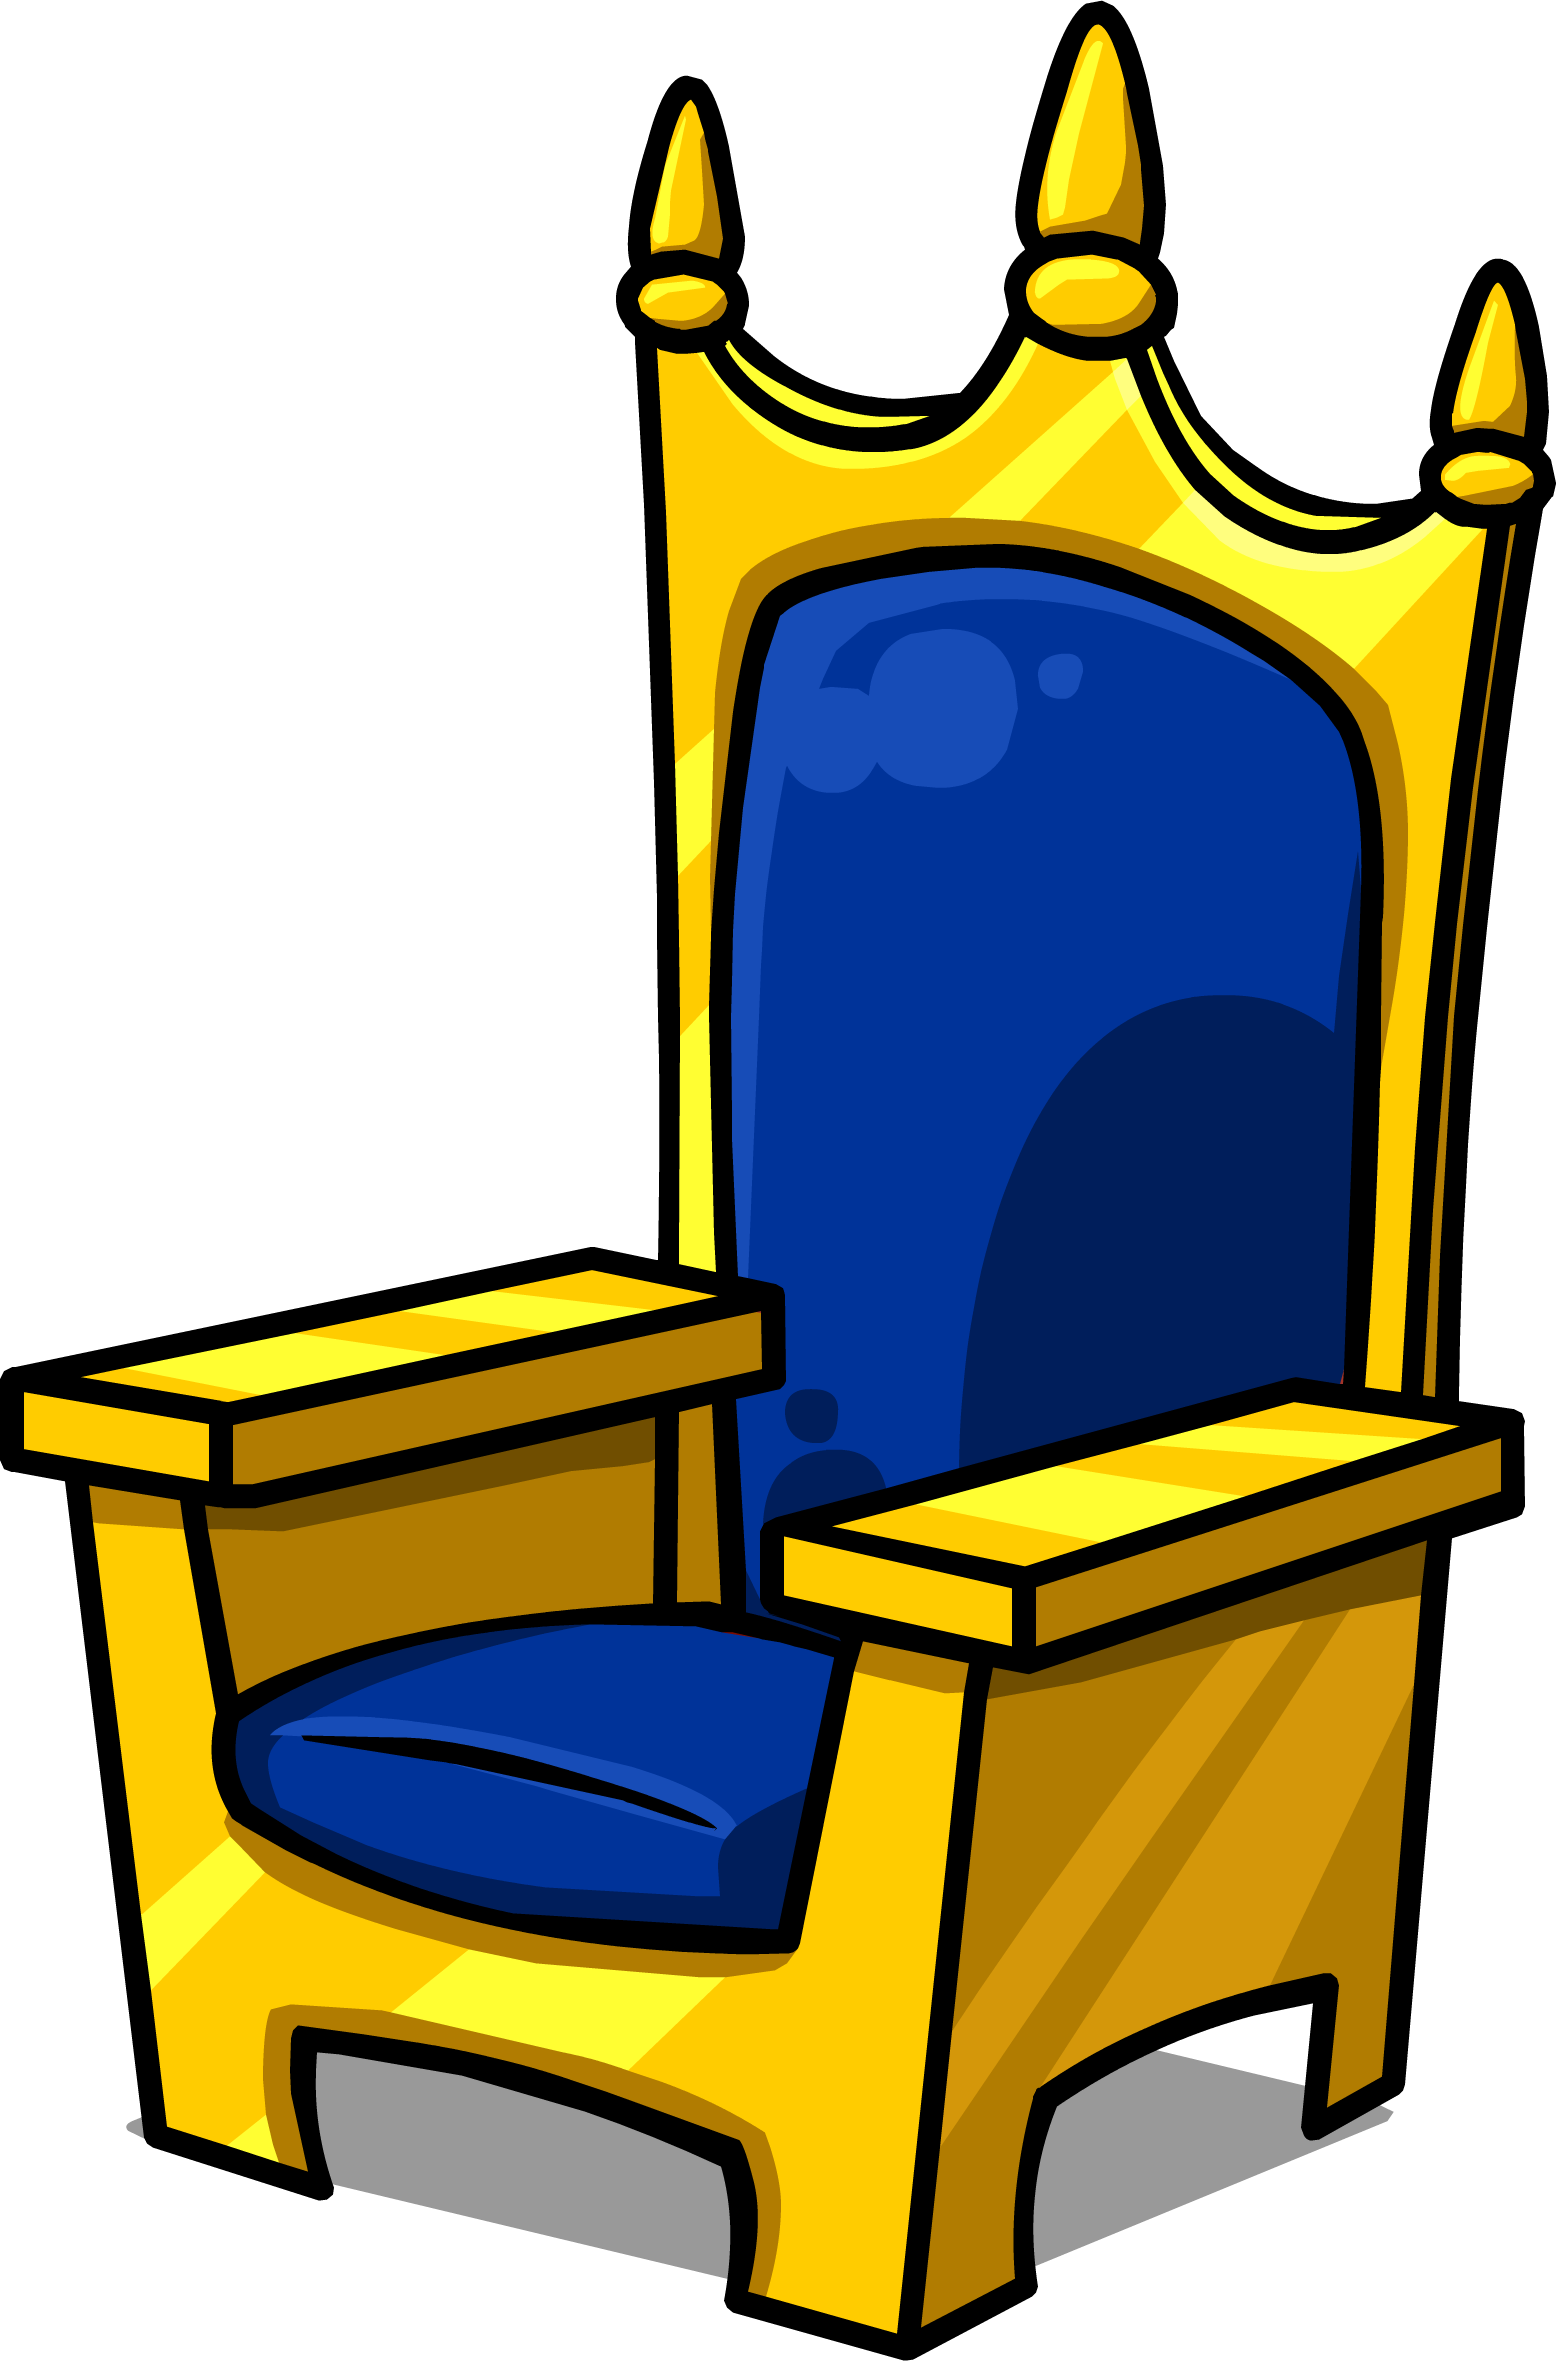 clip art royalty free stock Throne clipart. Blue free on dumielauxepices.